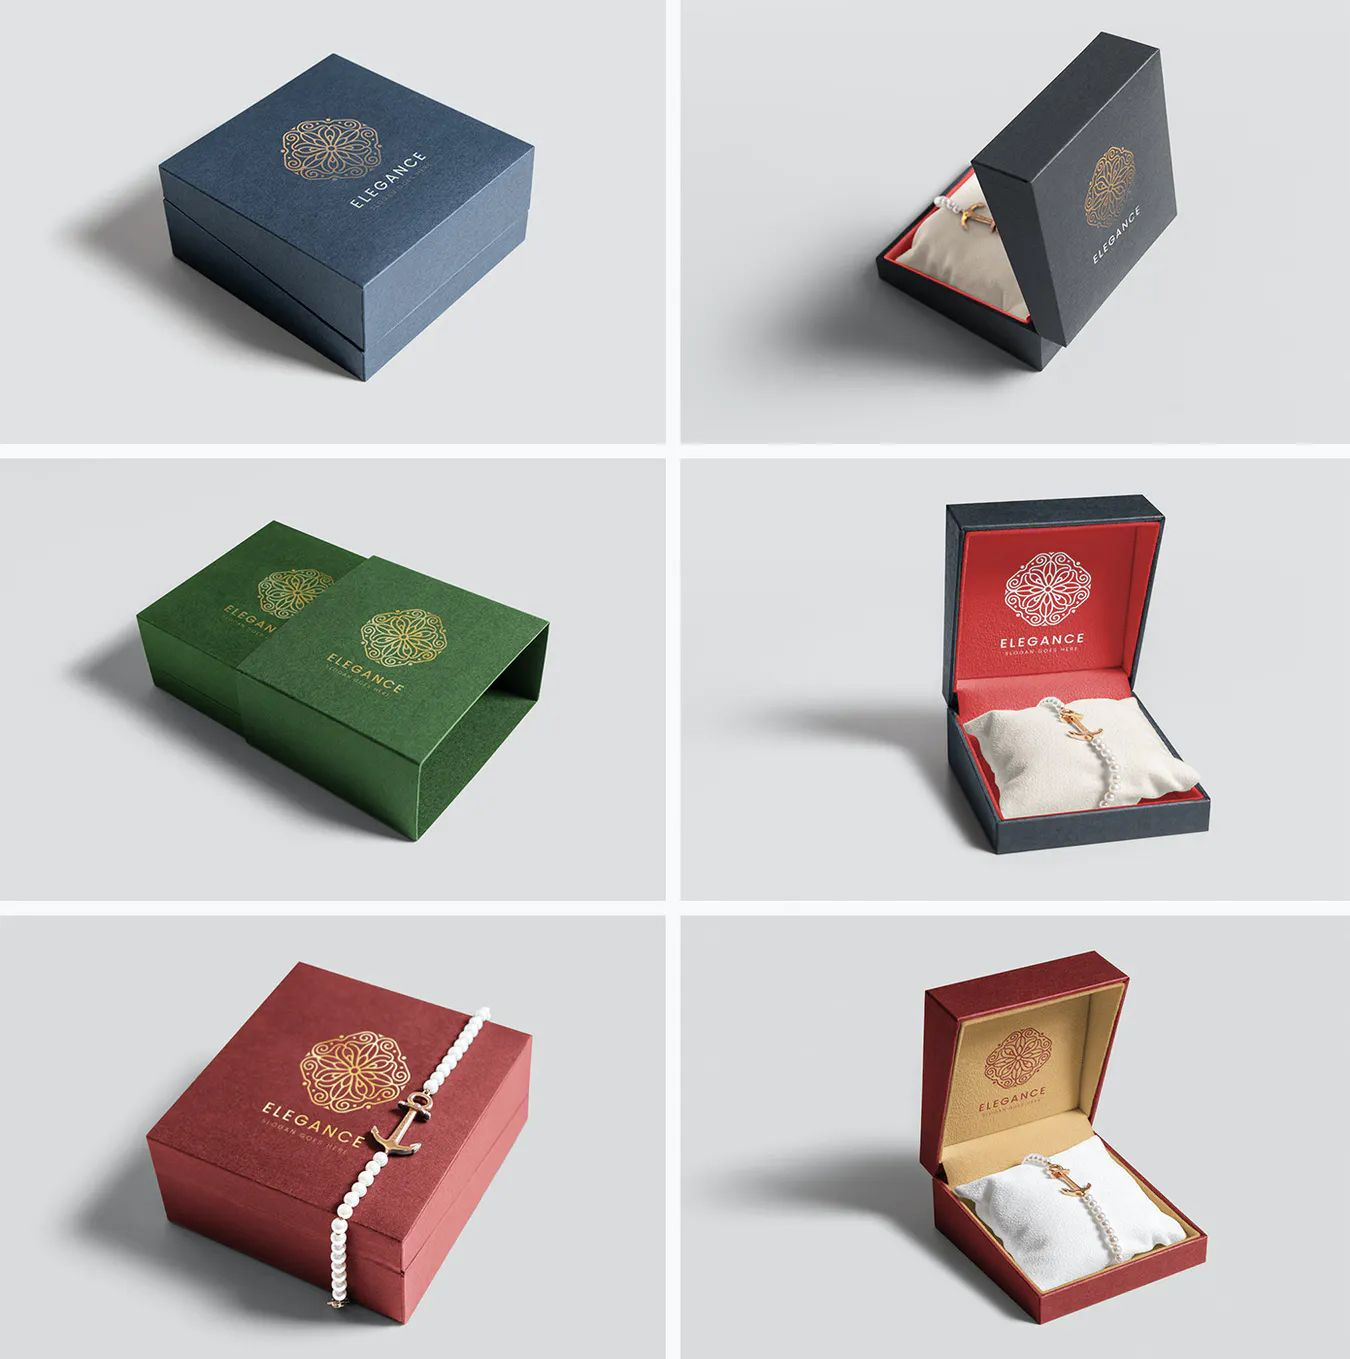 Download Jewelry Packaging Box Mockups Jewelry Packaging Box Box Mockup Jewelry Packaging